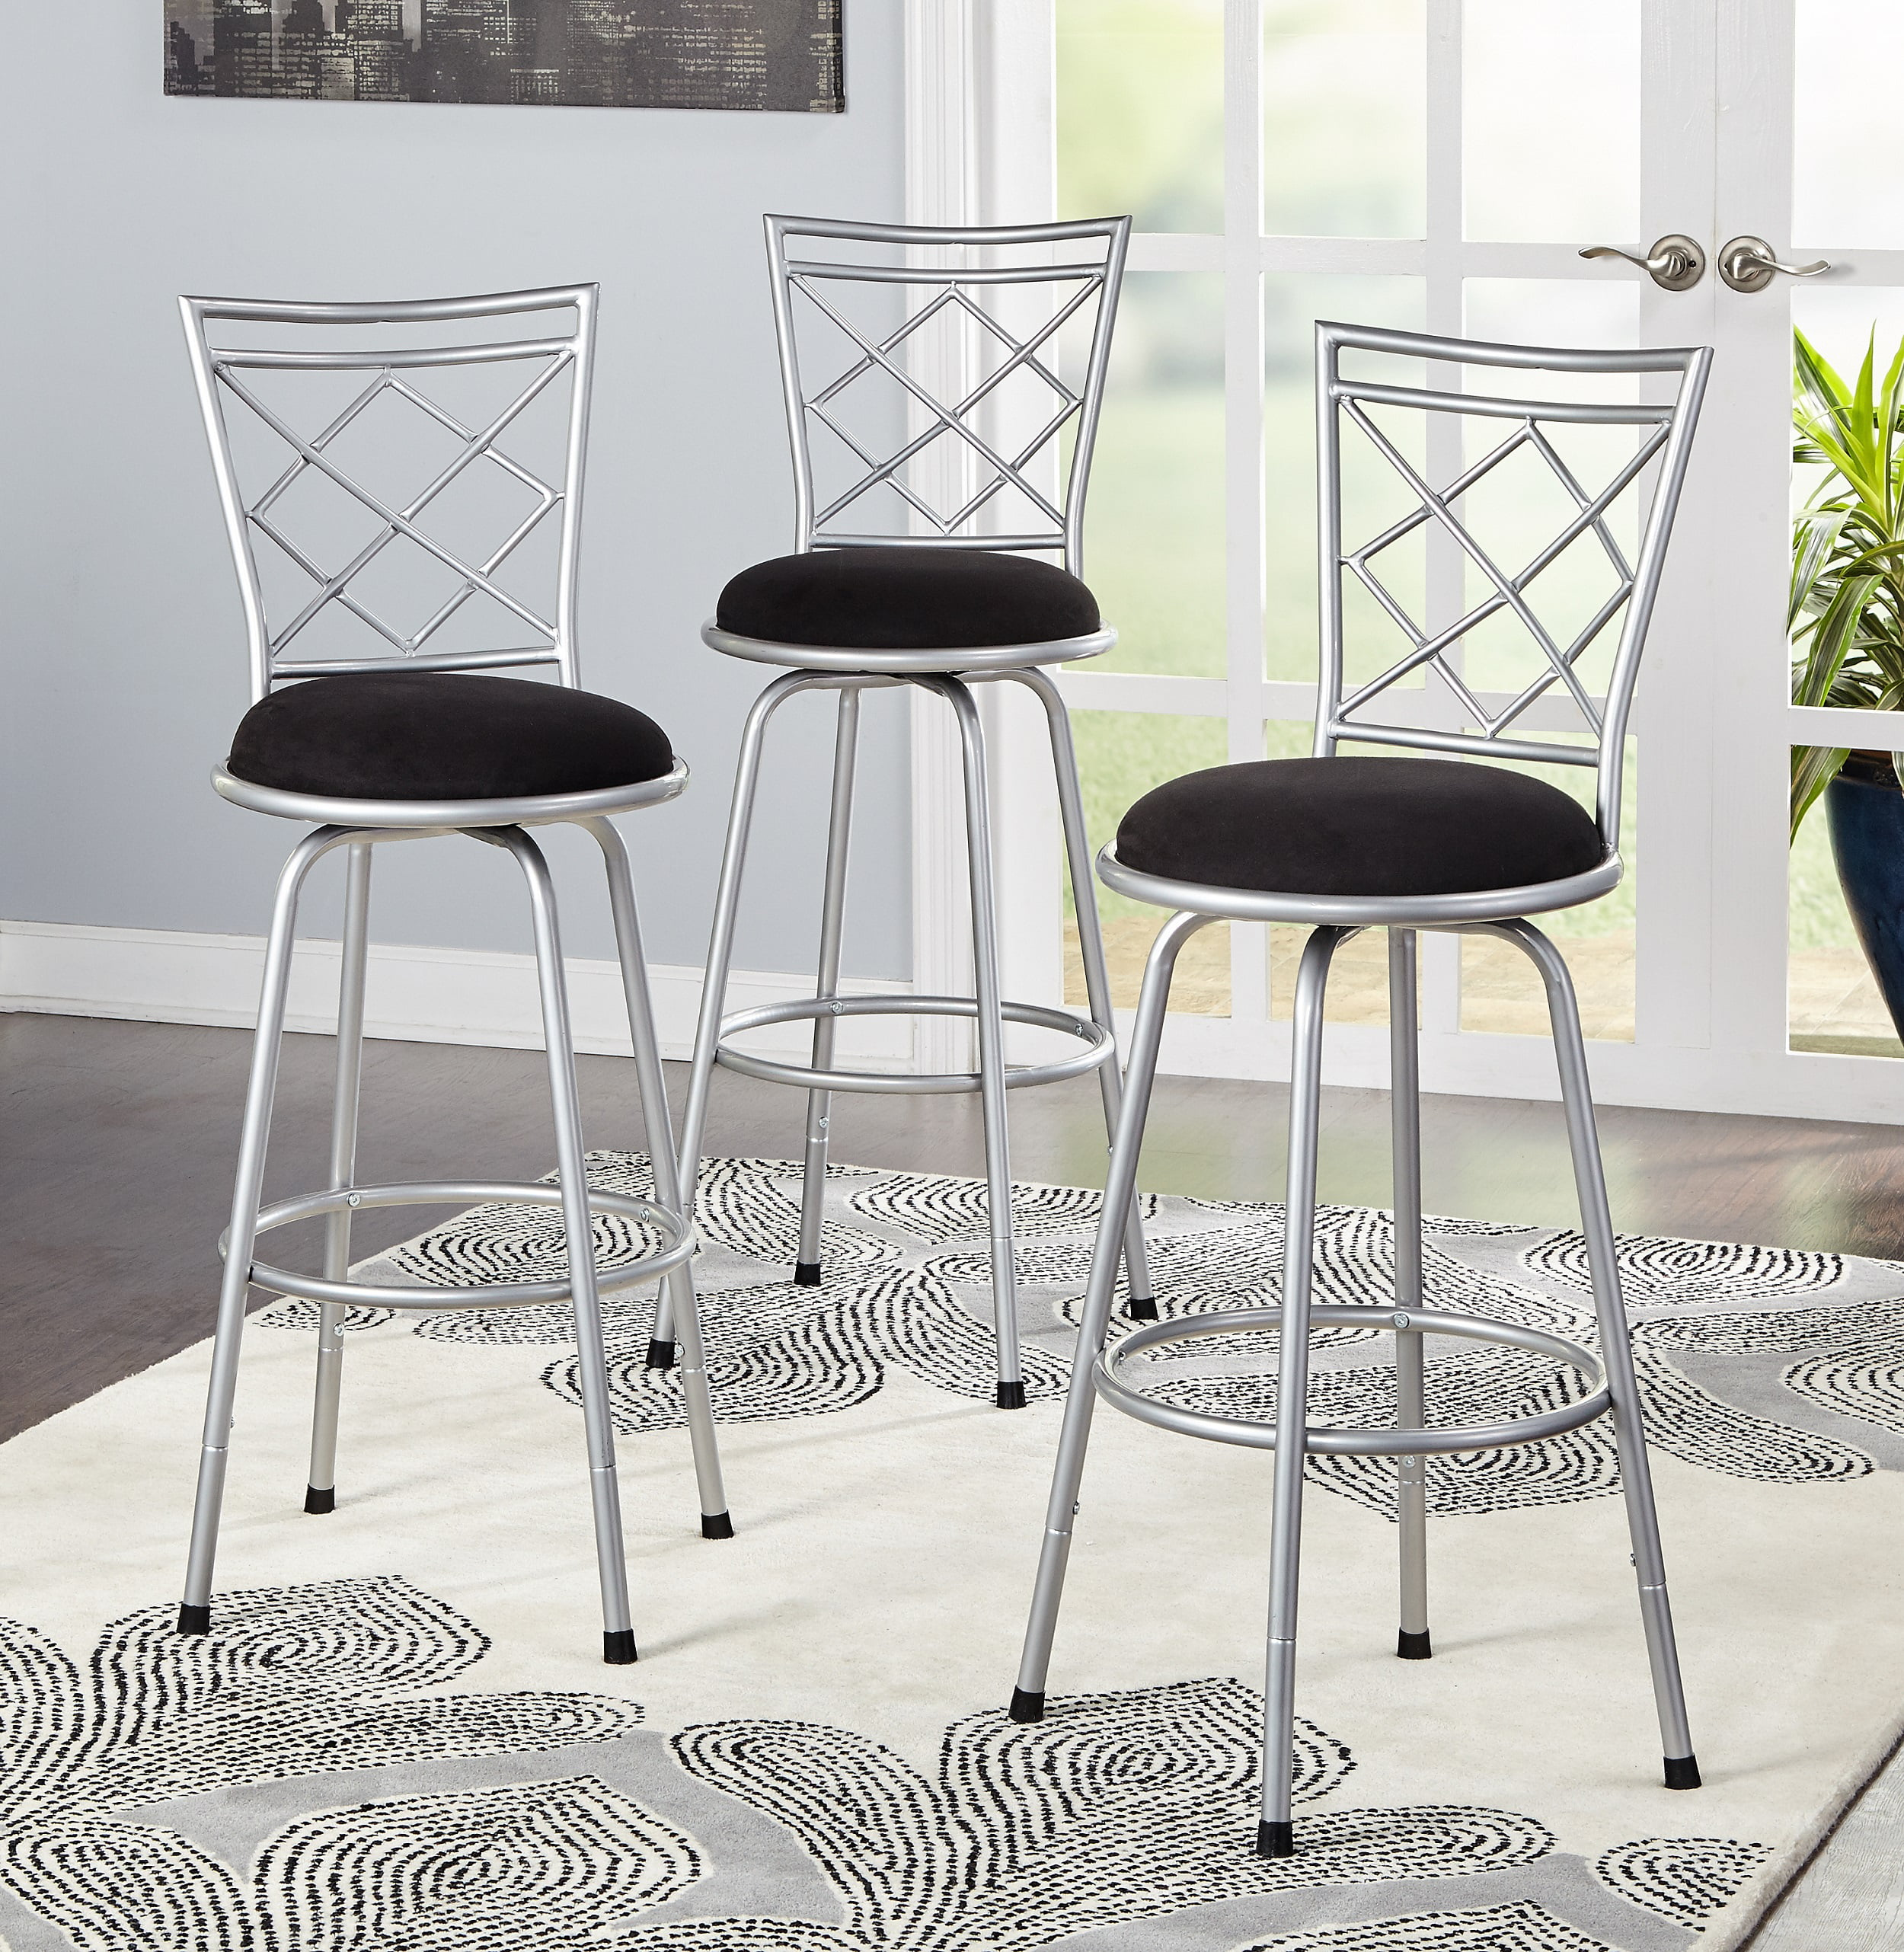 3 Piece Avery Adjustable Height Barstool Multiple